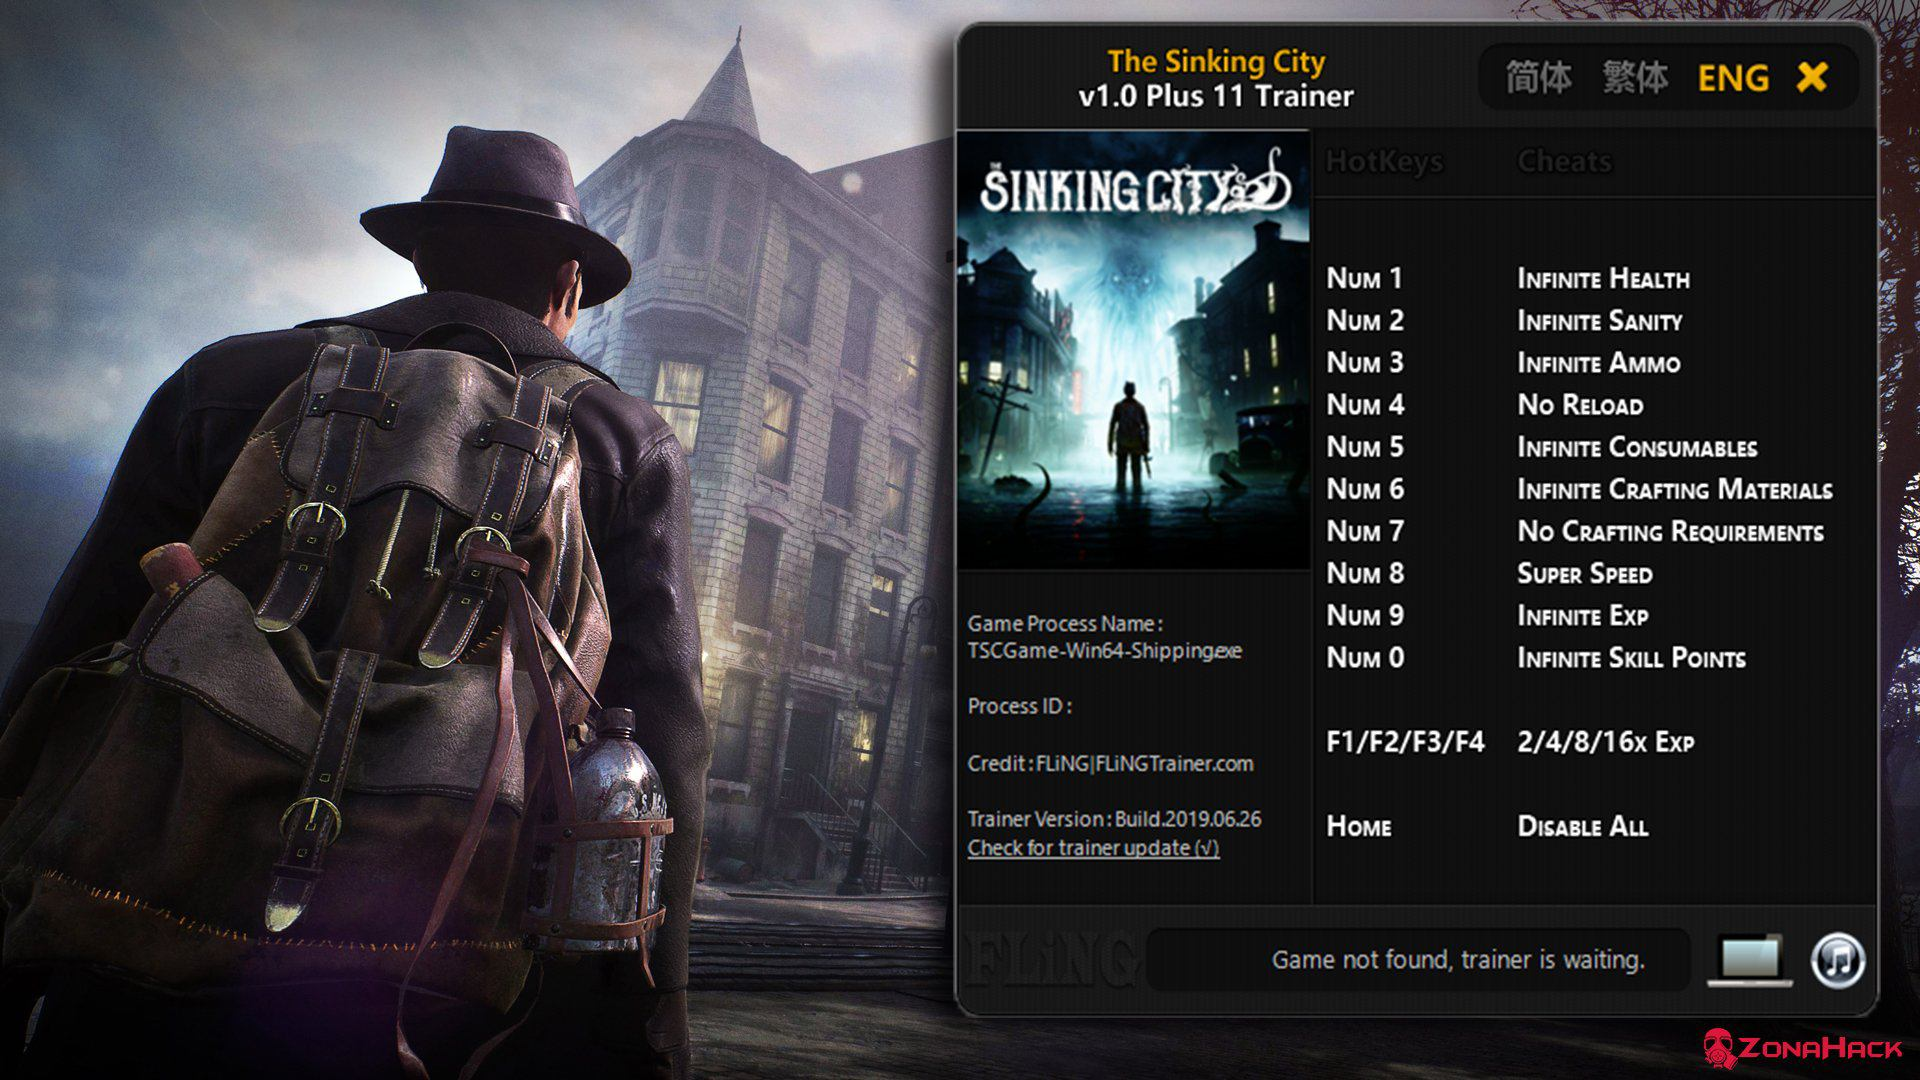 Трейнер к игре The Sinking City (+11) v.1.0 от Fling